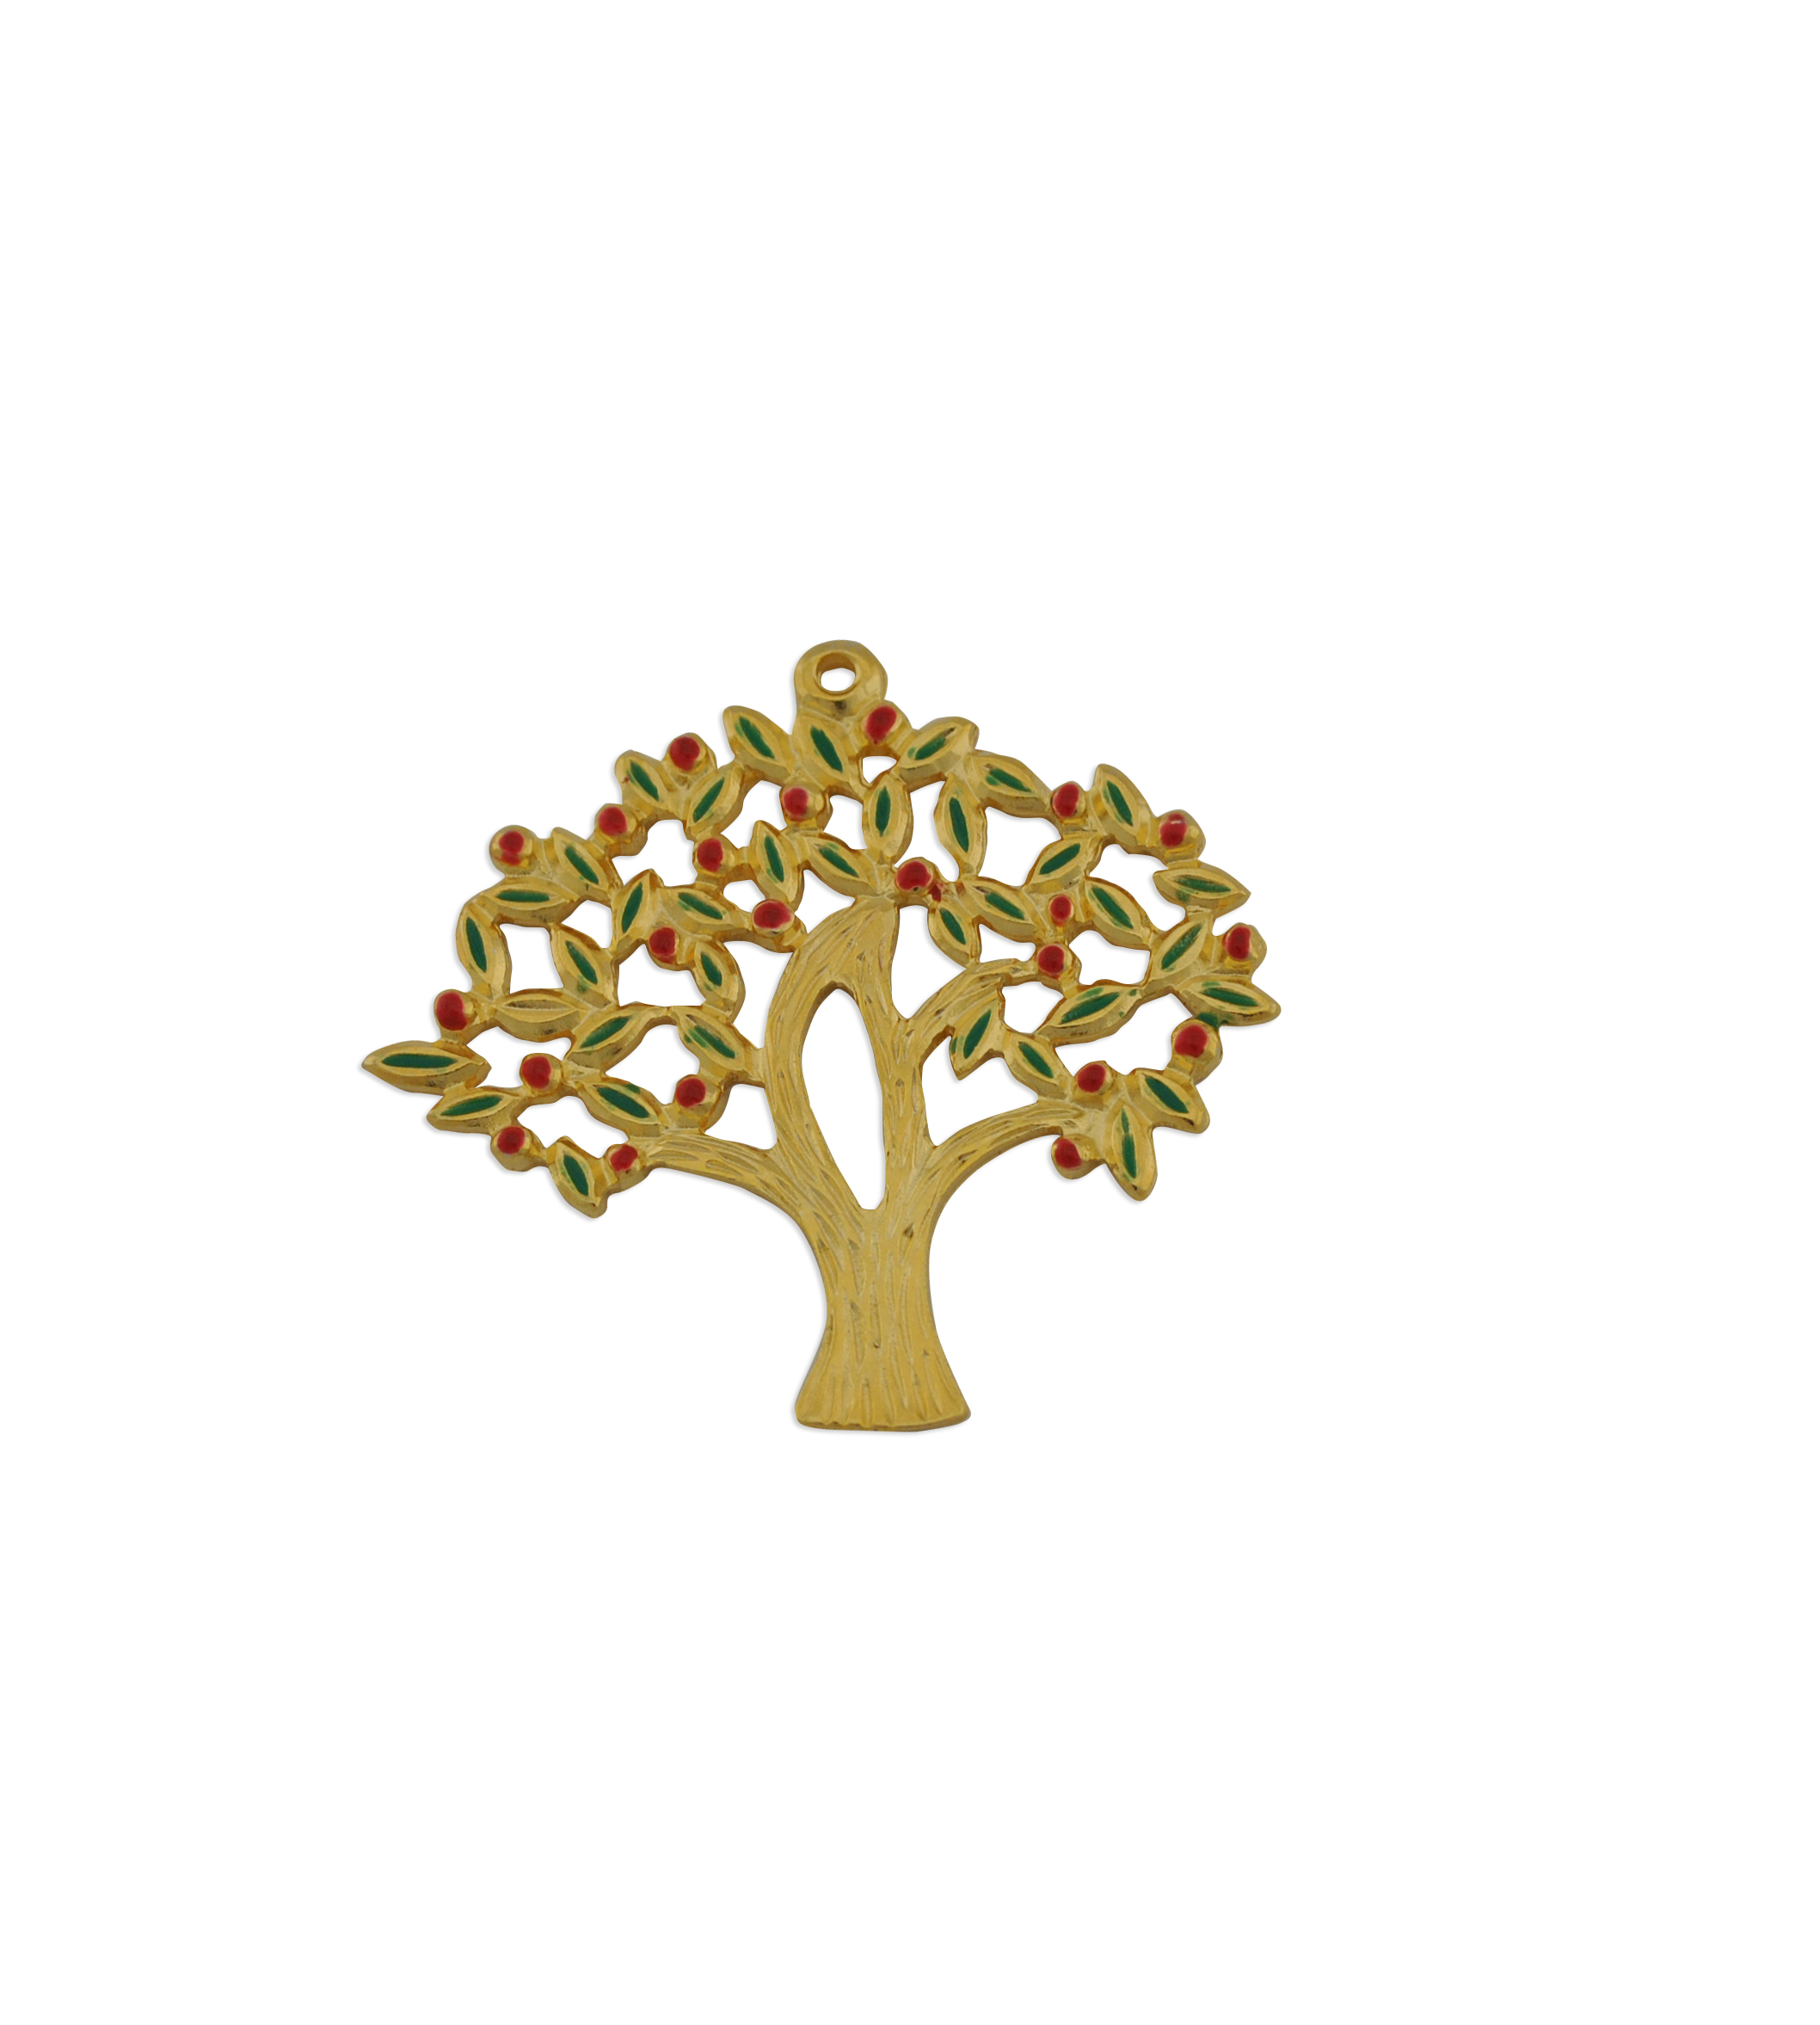 TREE GOLD PLATED WITH ENAMEL 46mm